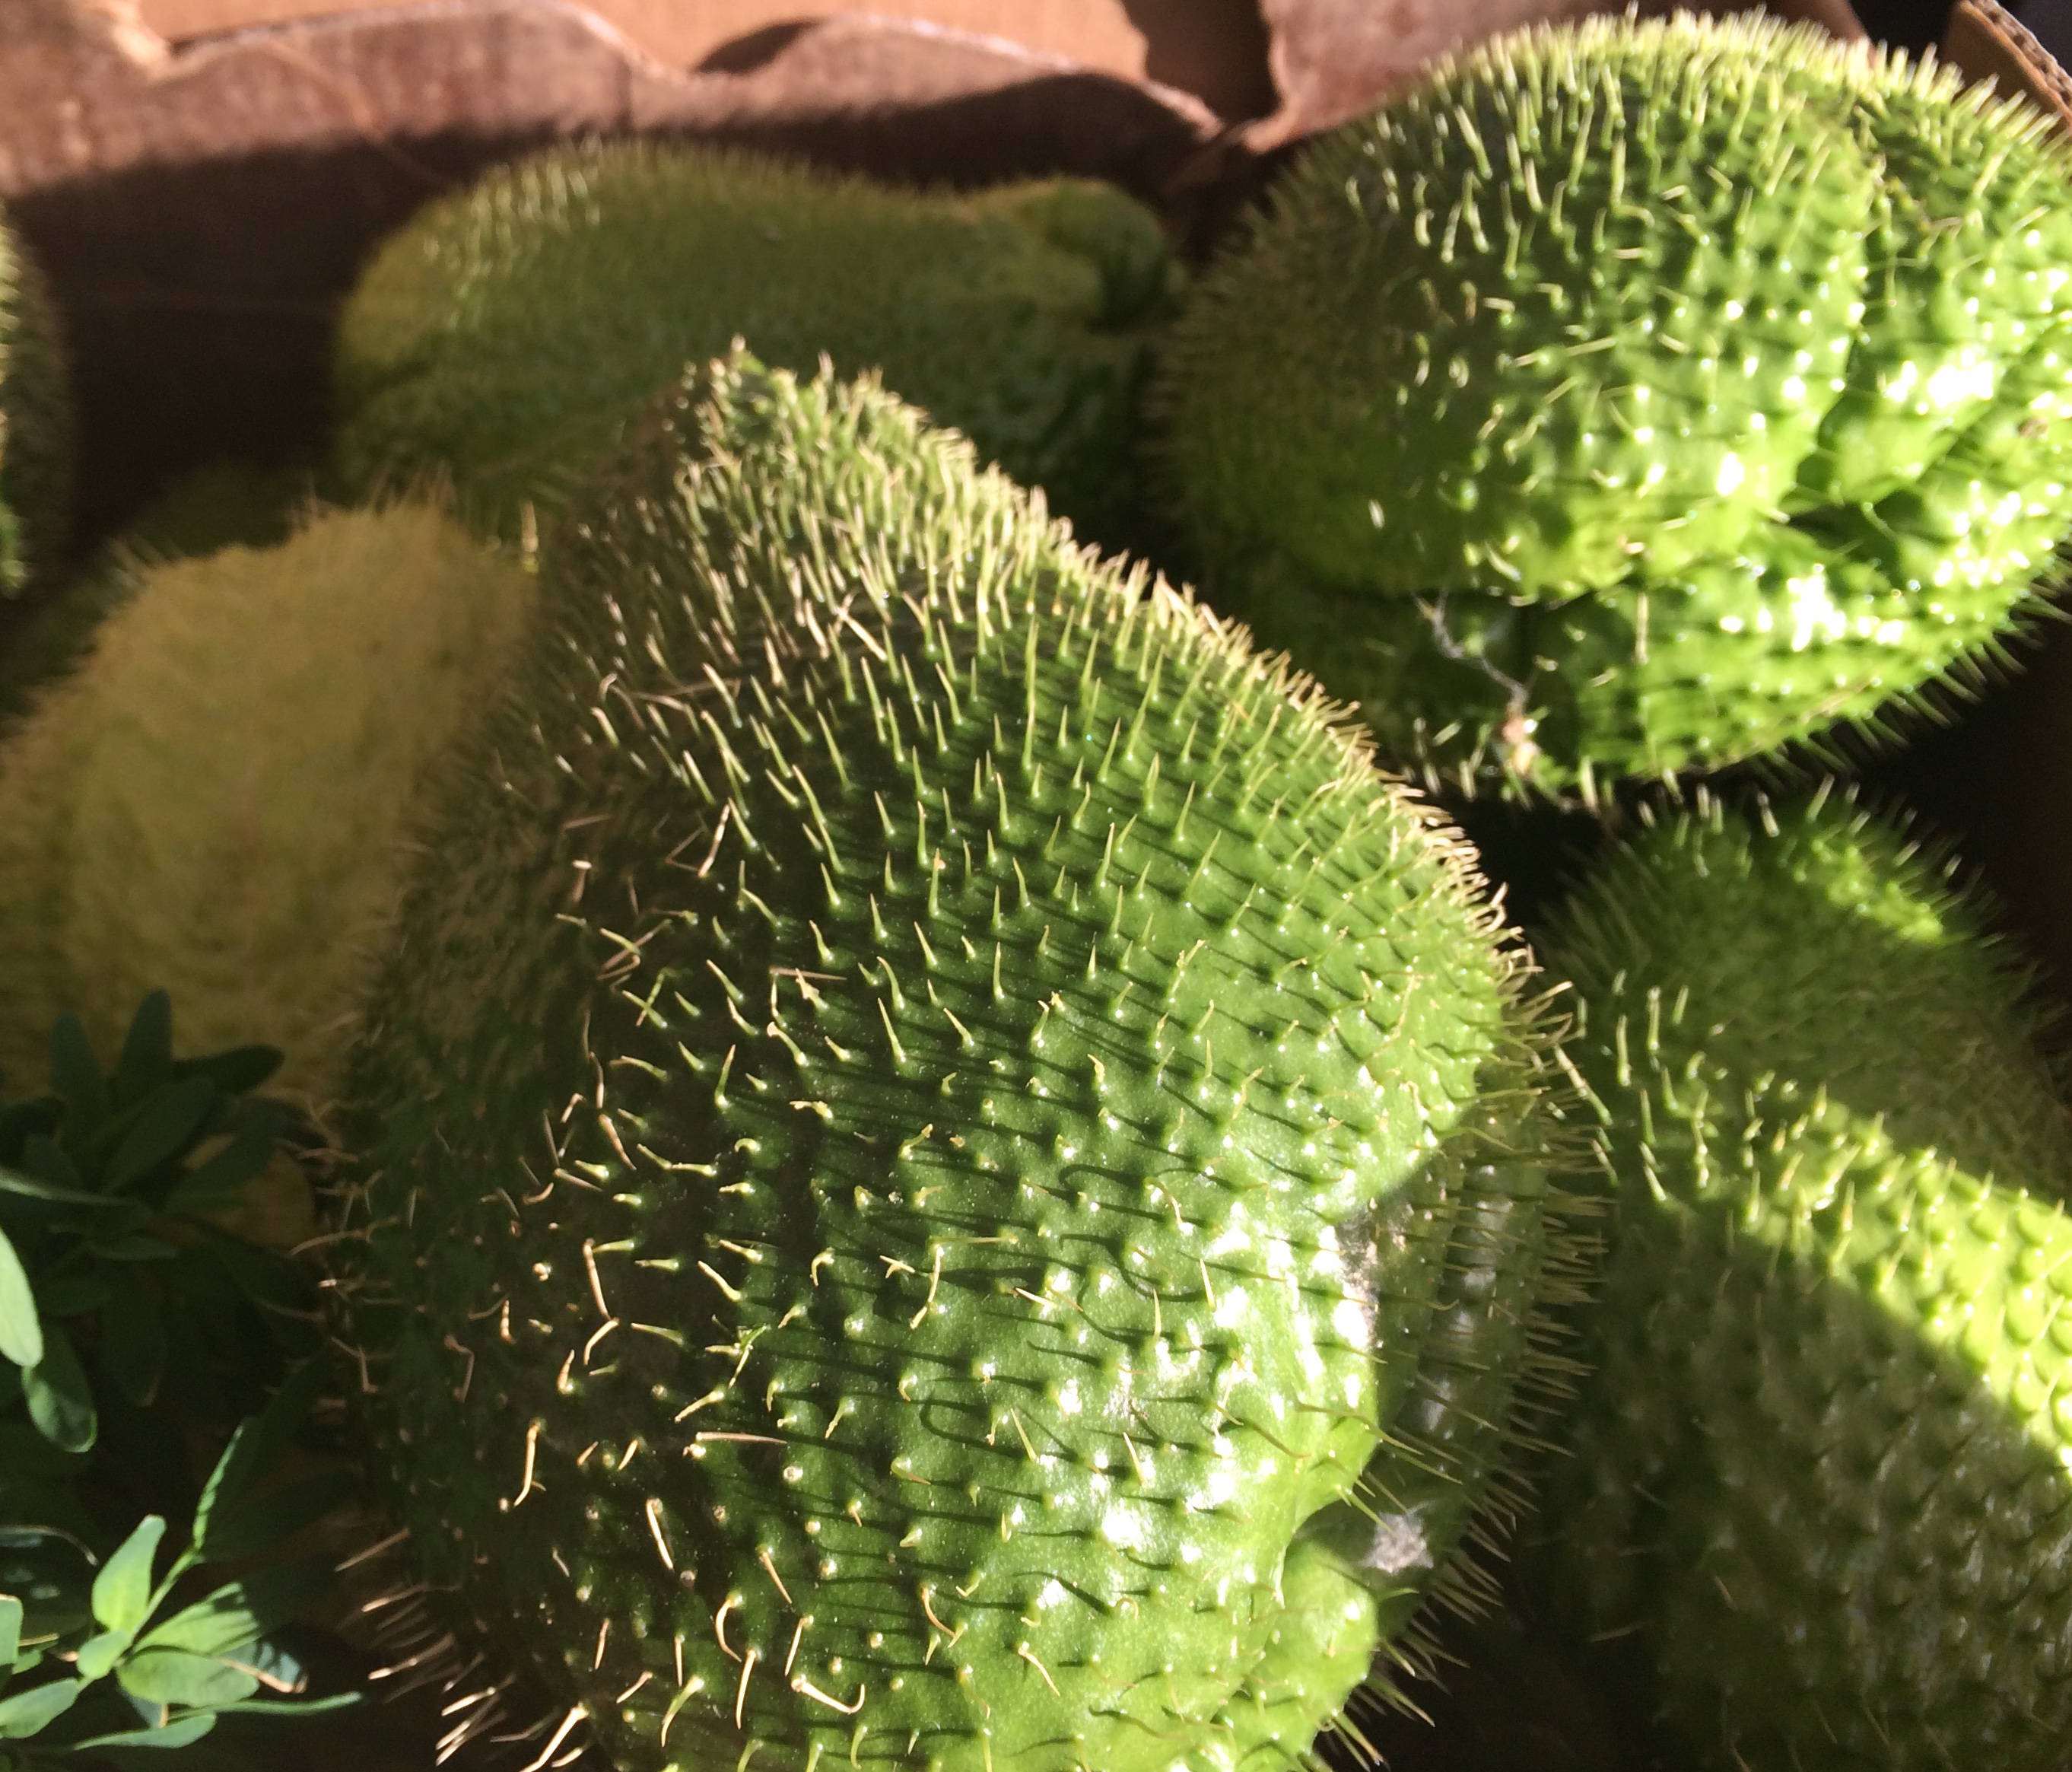 Saturday Smiles: Do You Know Prickly Chayote?